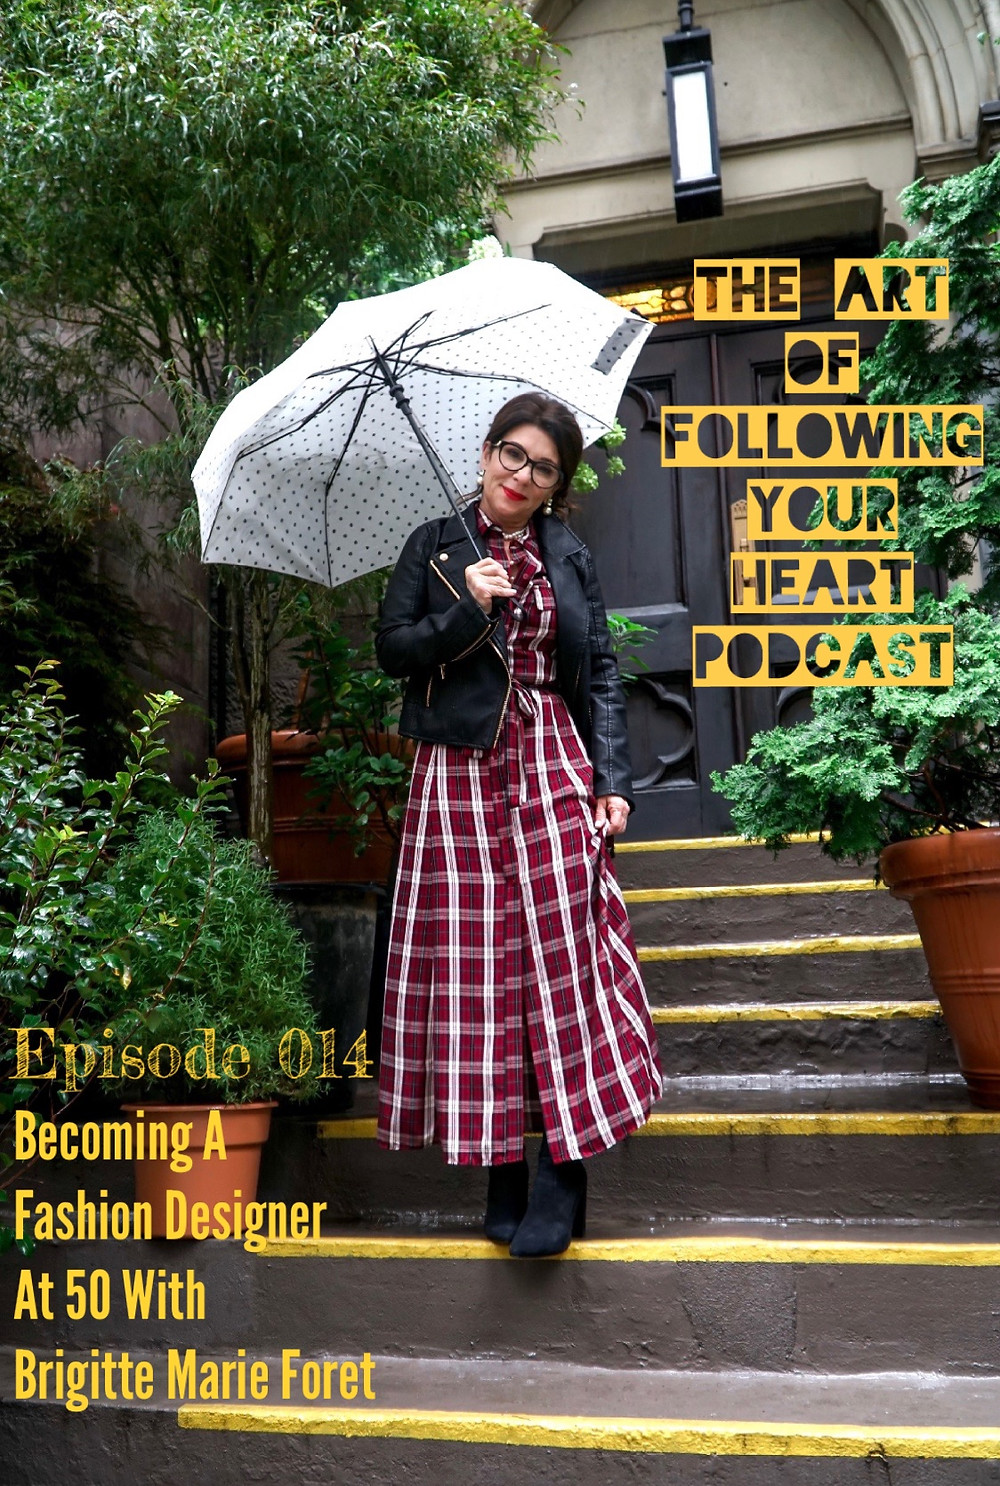 Becoming a Fashion Designer At 50 With Brigette Marie Foret - The Art of Following Your Heart Podcast